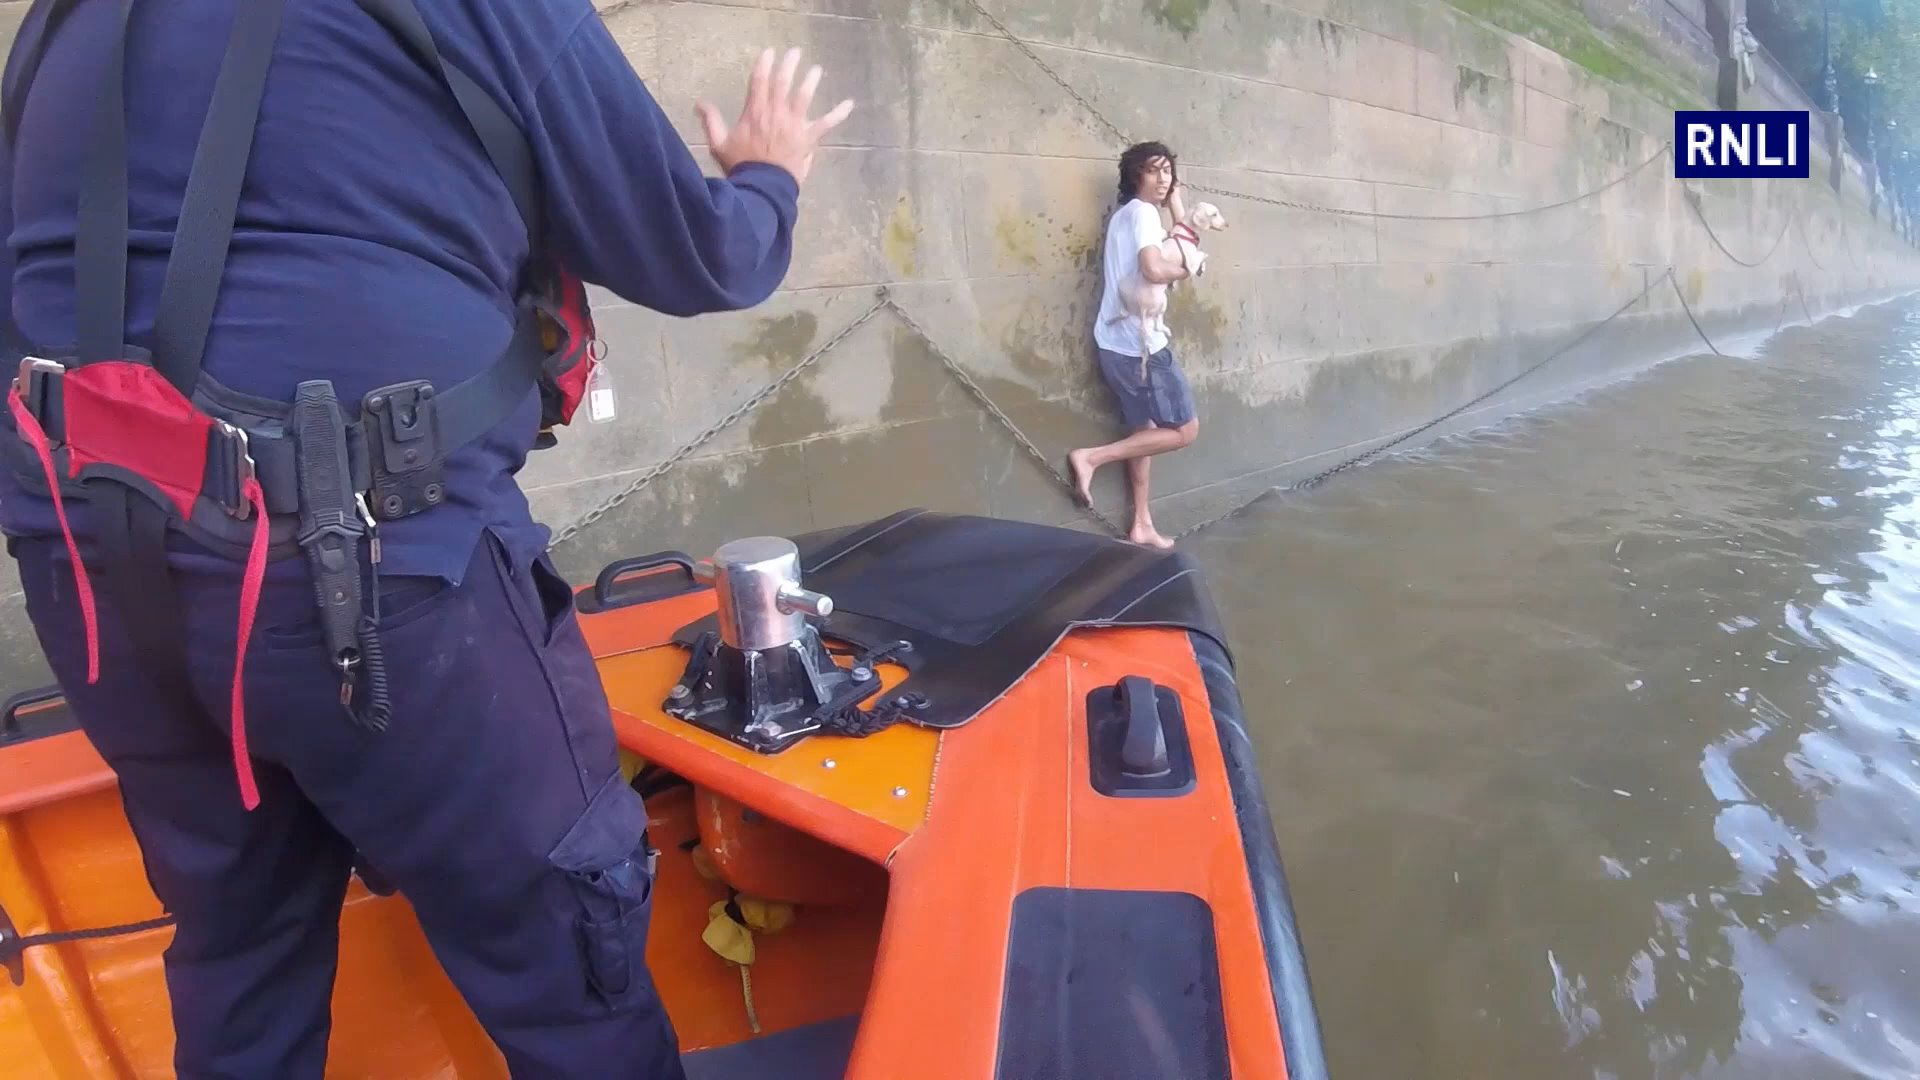 The moment Tower RNLI lifeboat crew rescue the man and the dog